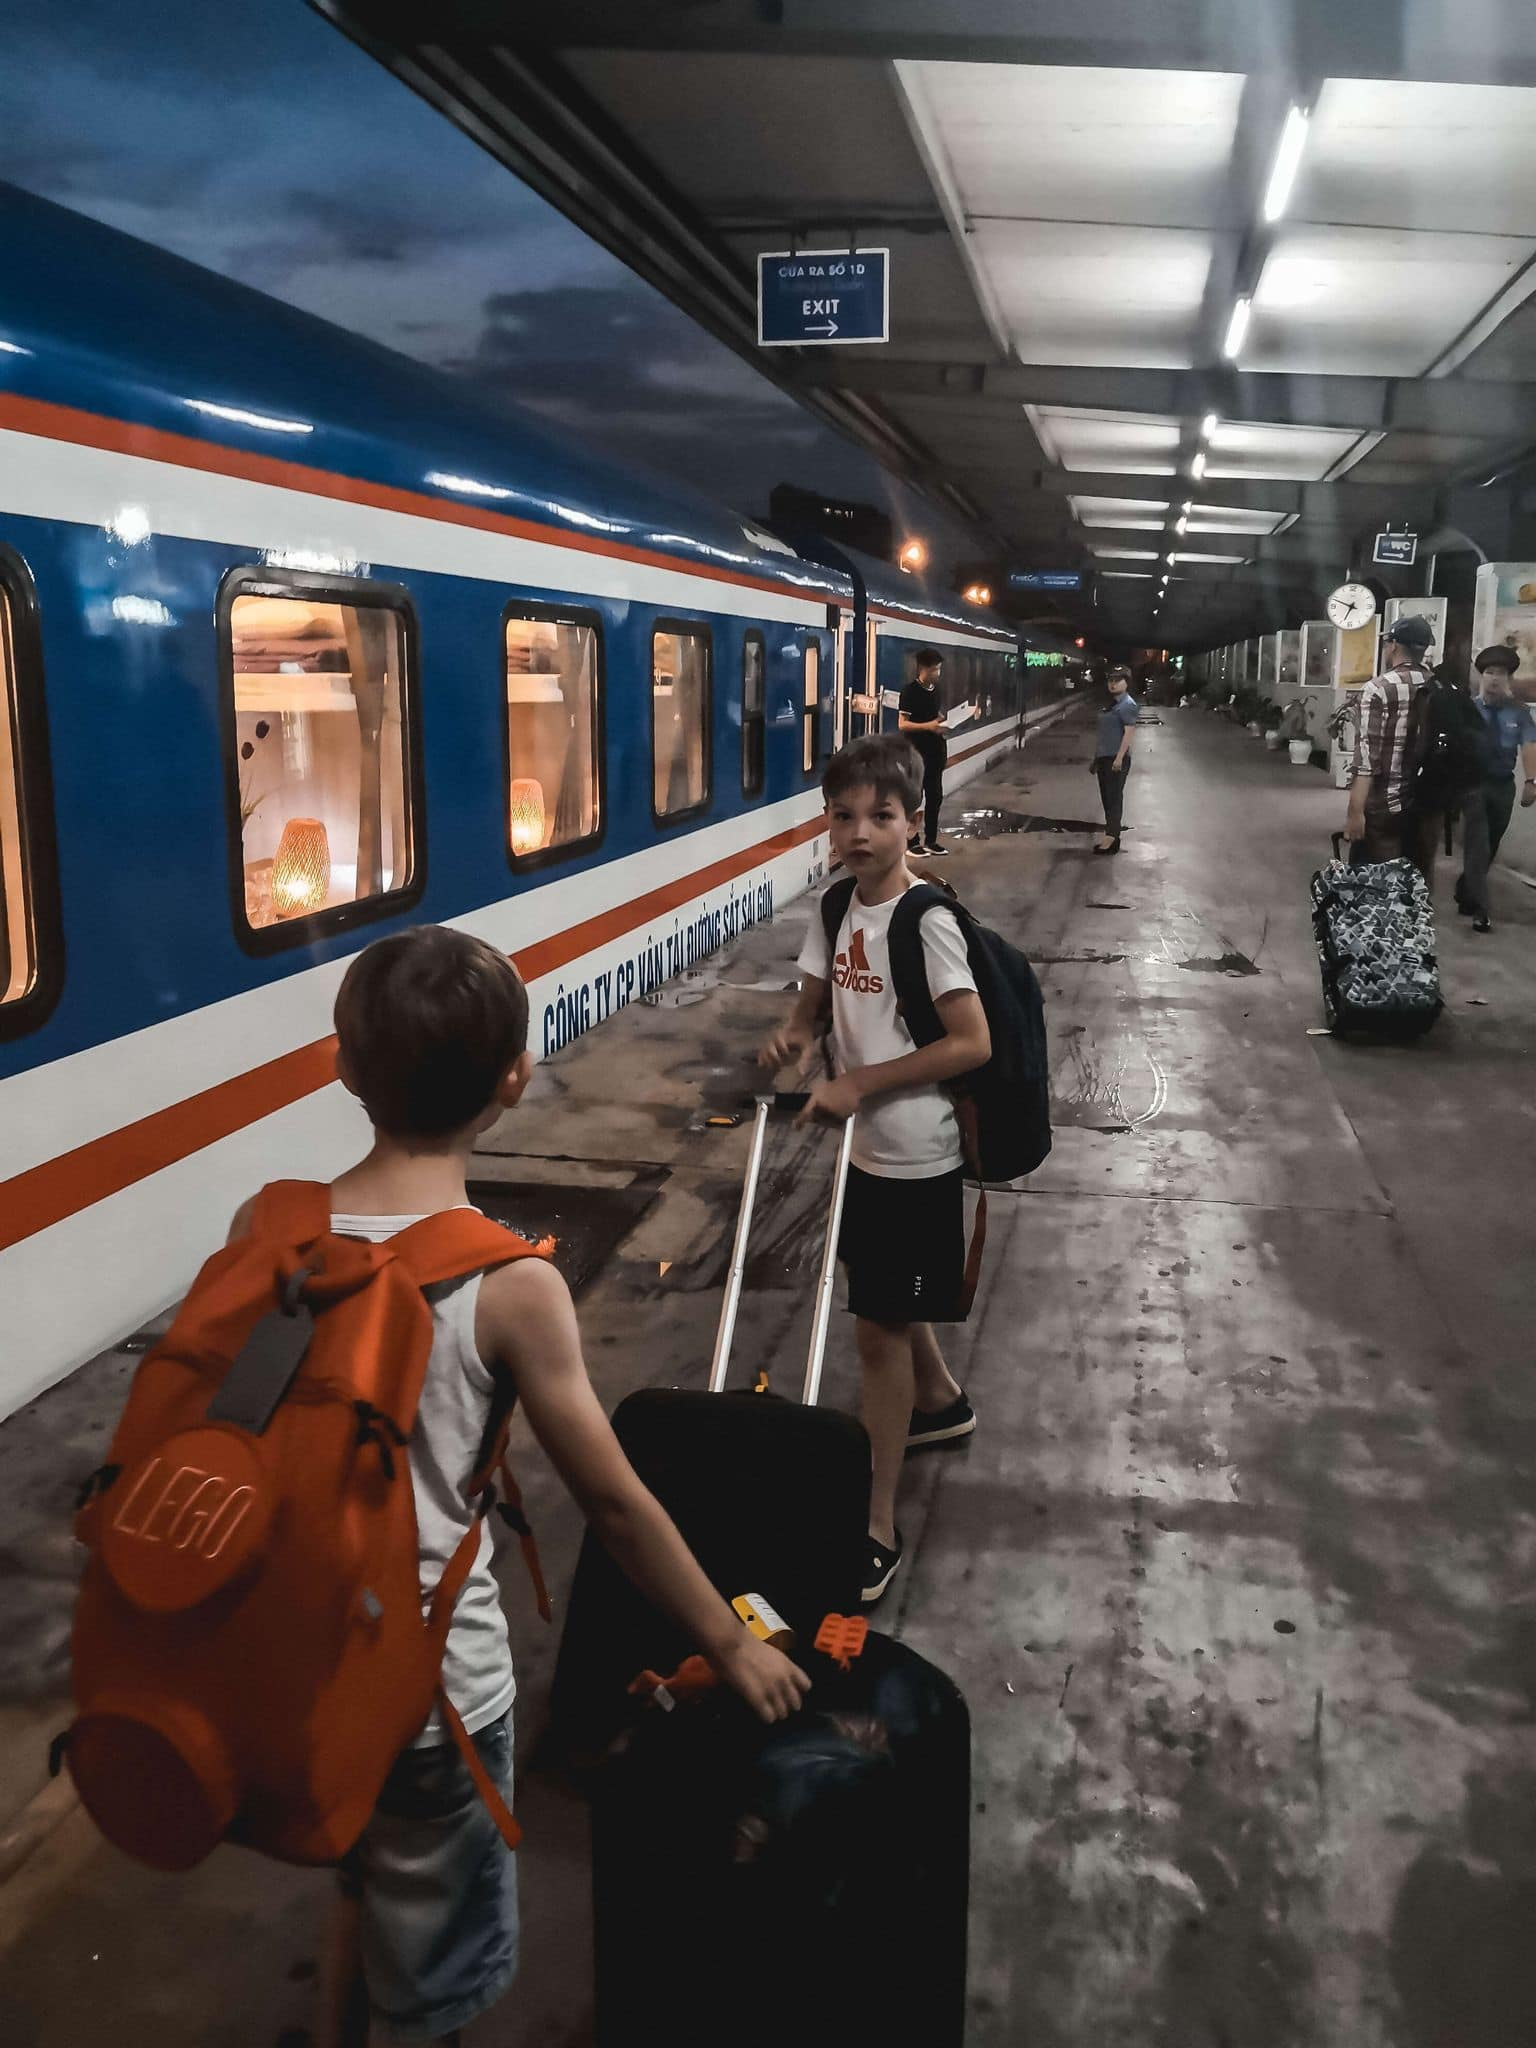 Getting ready to sleep on an overnight train journey in Vietnam